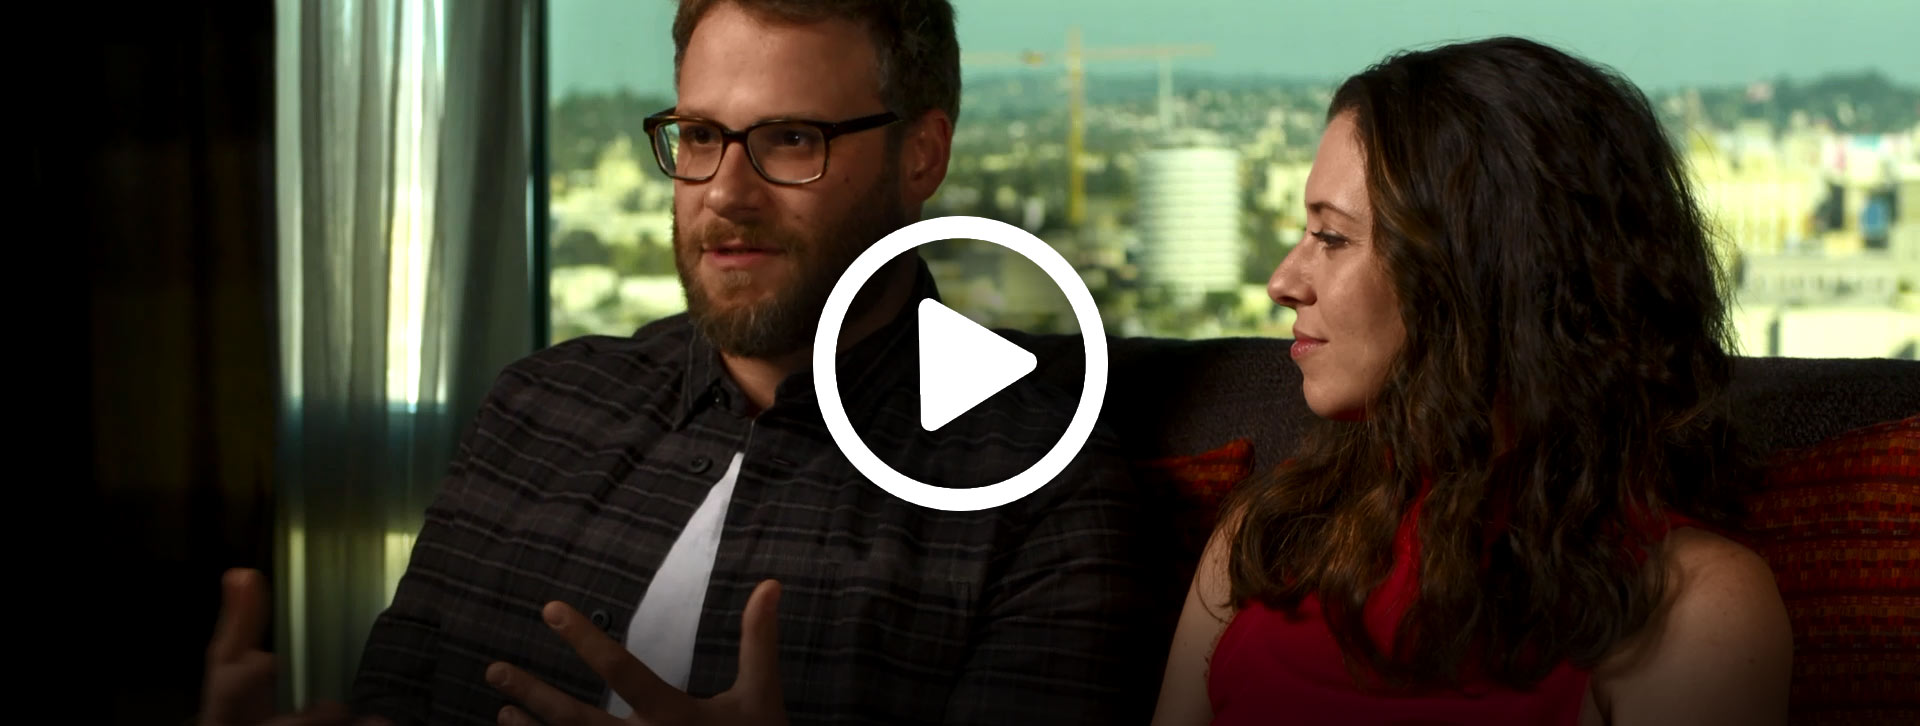 WebMD Health Hero Seth Rogen on raising awareness about Alzheimer's